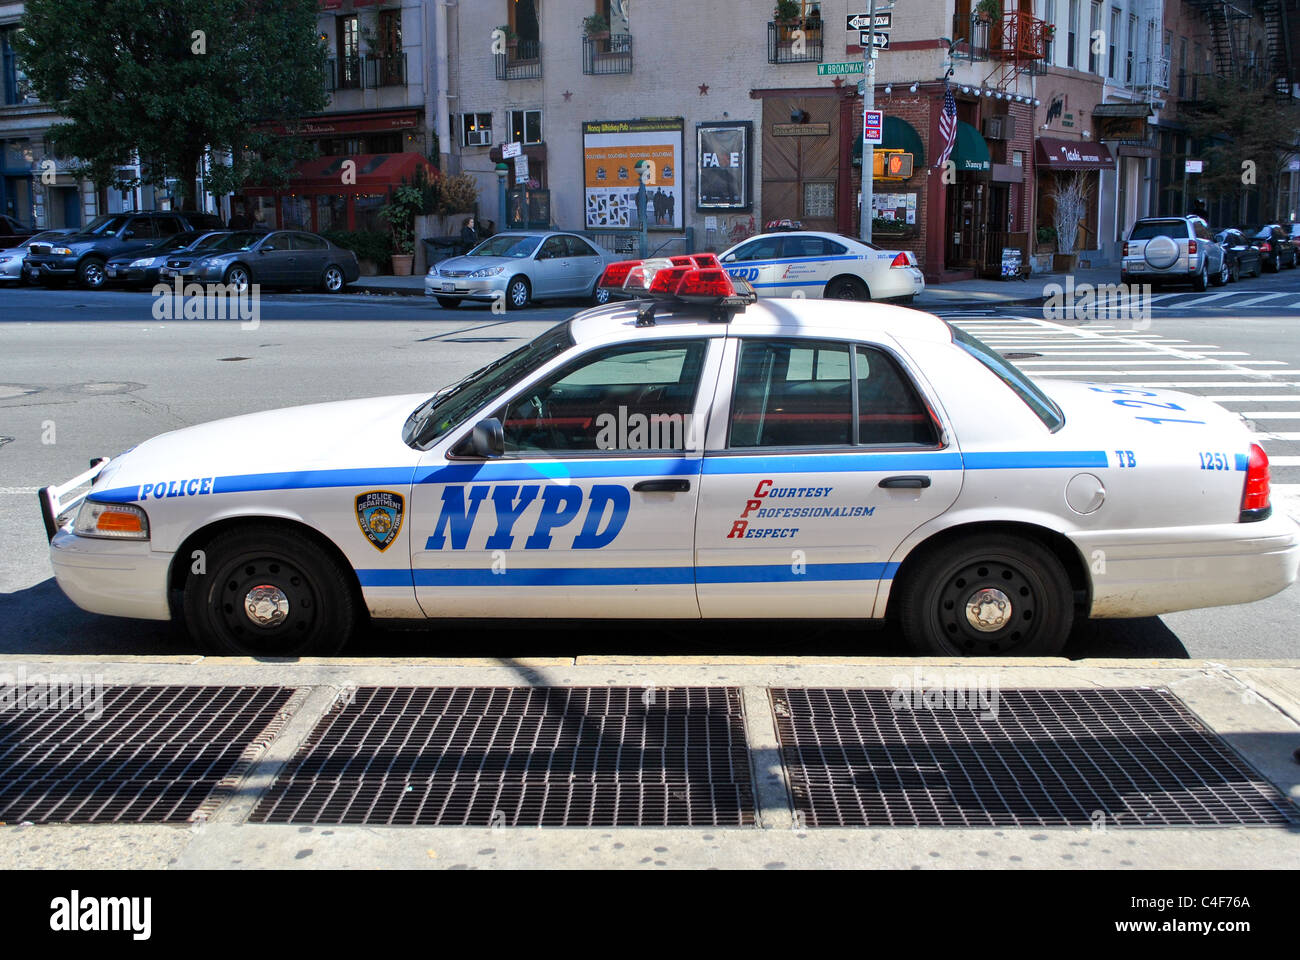 A New York Police car on the street. Stock Photo